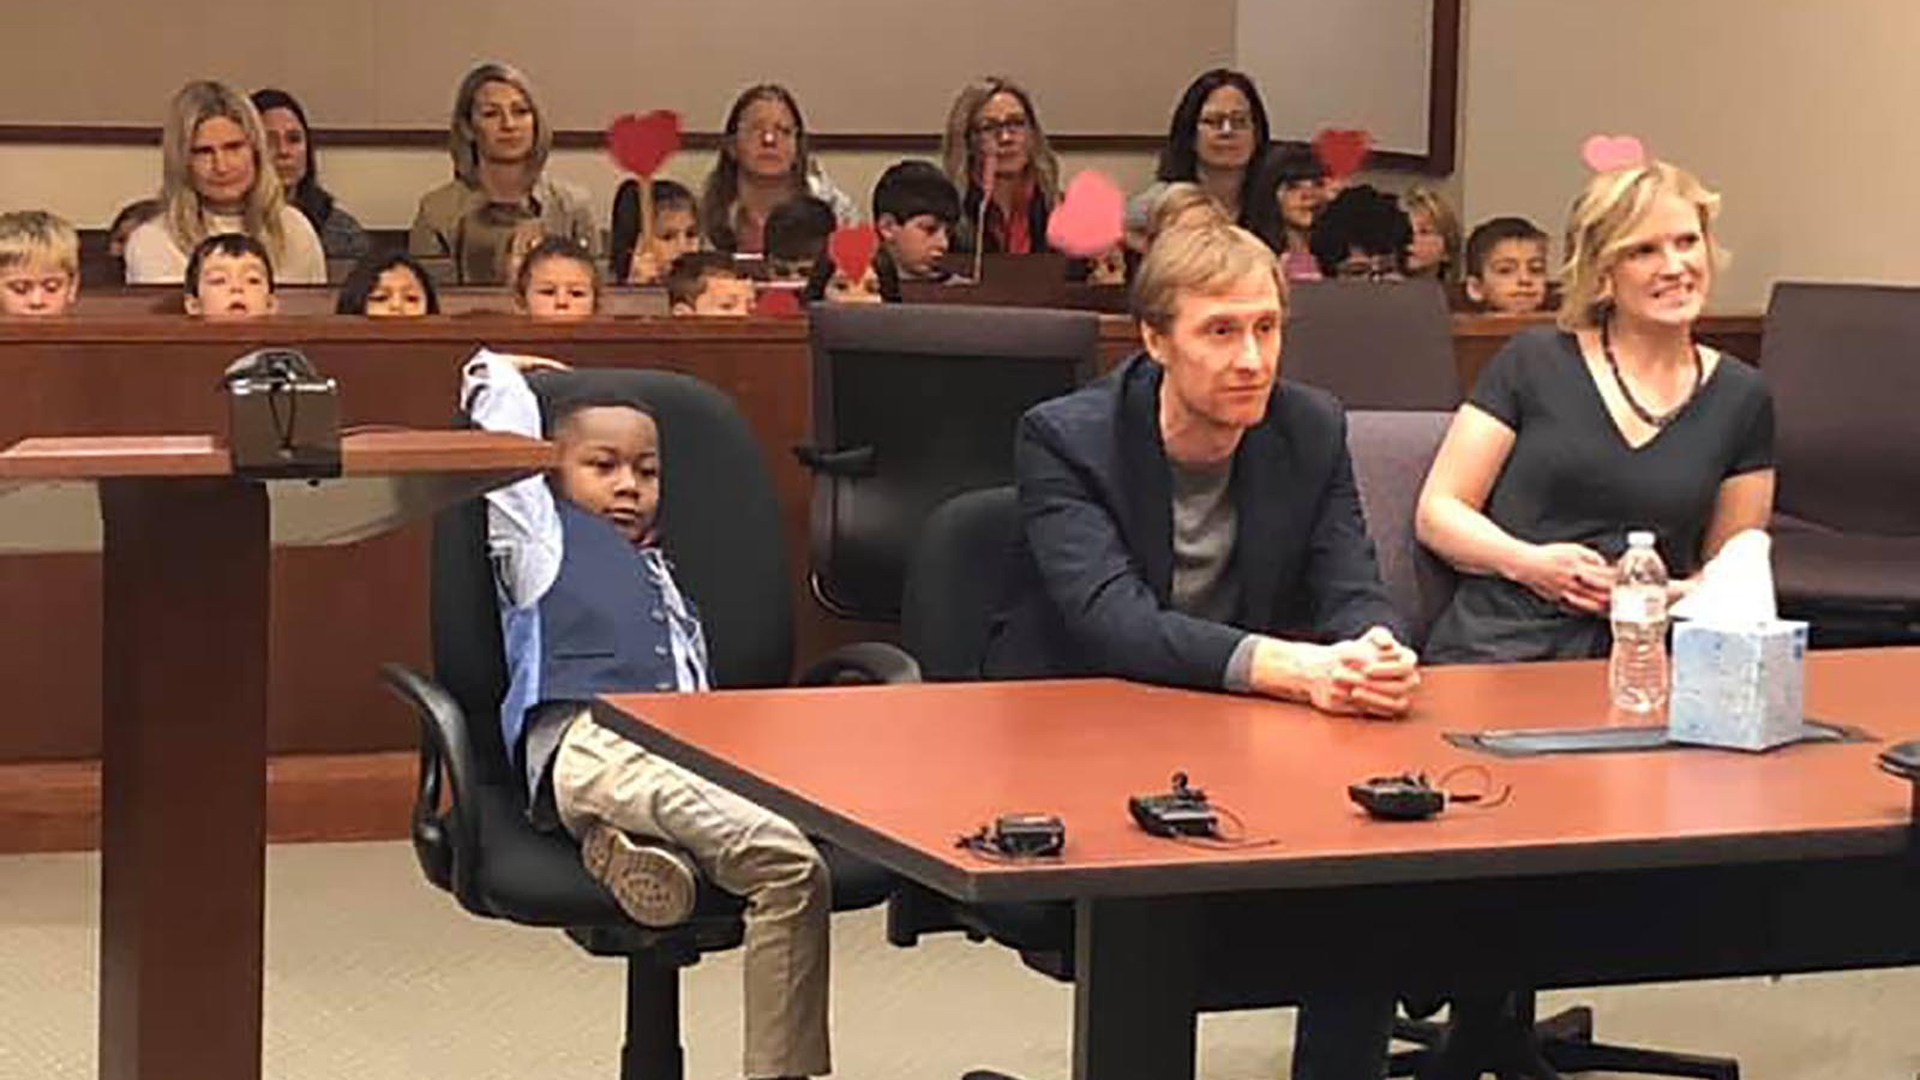 Five-year-old Michael's entire kindergarten class sat in the audience behind him waving big red hearts mounted on wooden sticks to show their support. (Credit: Kent County, Michigan)